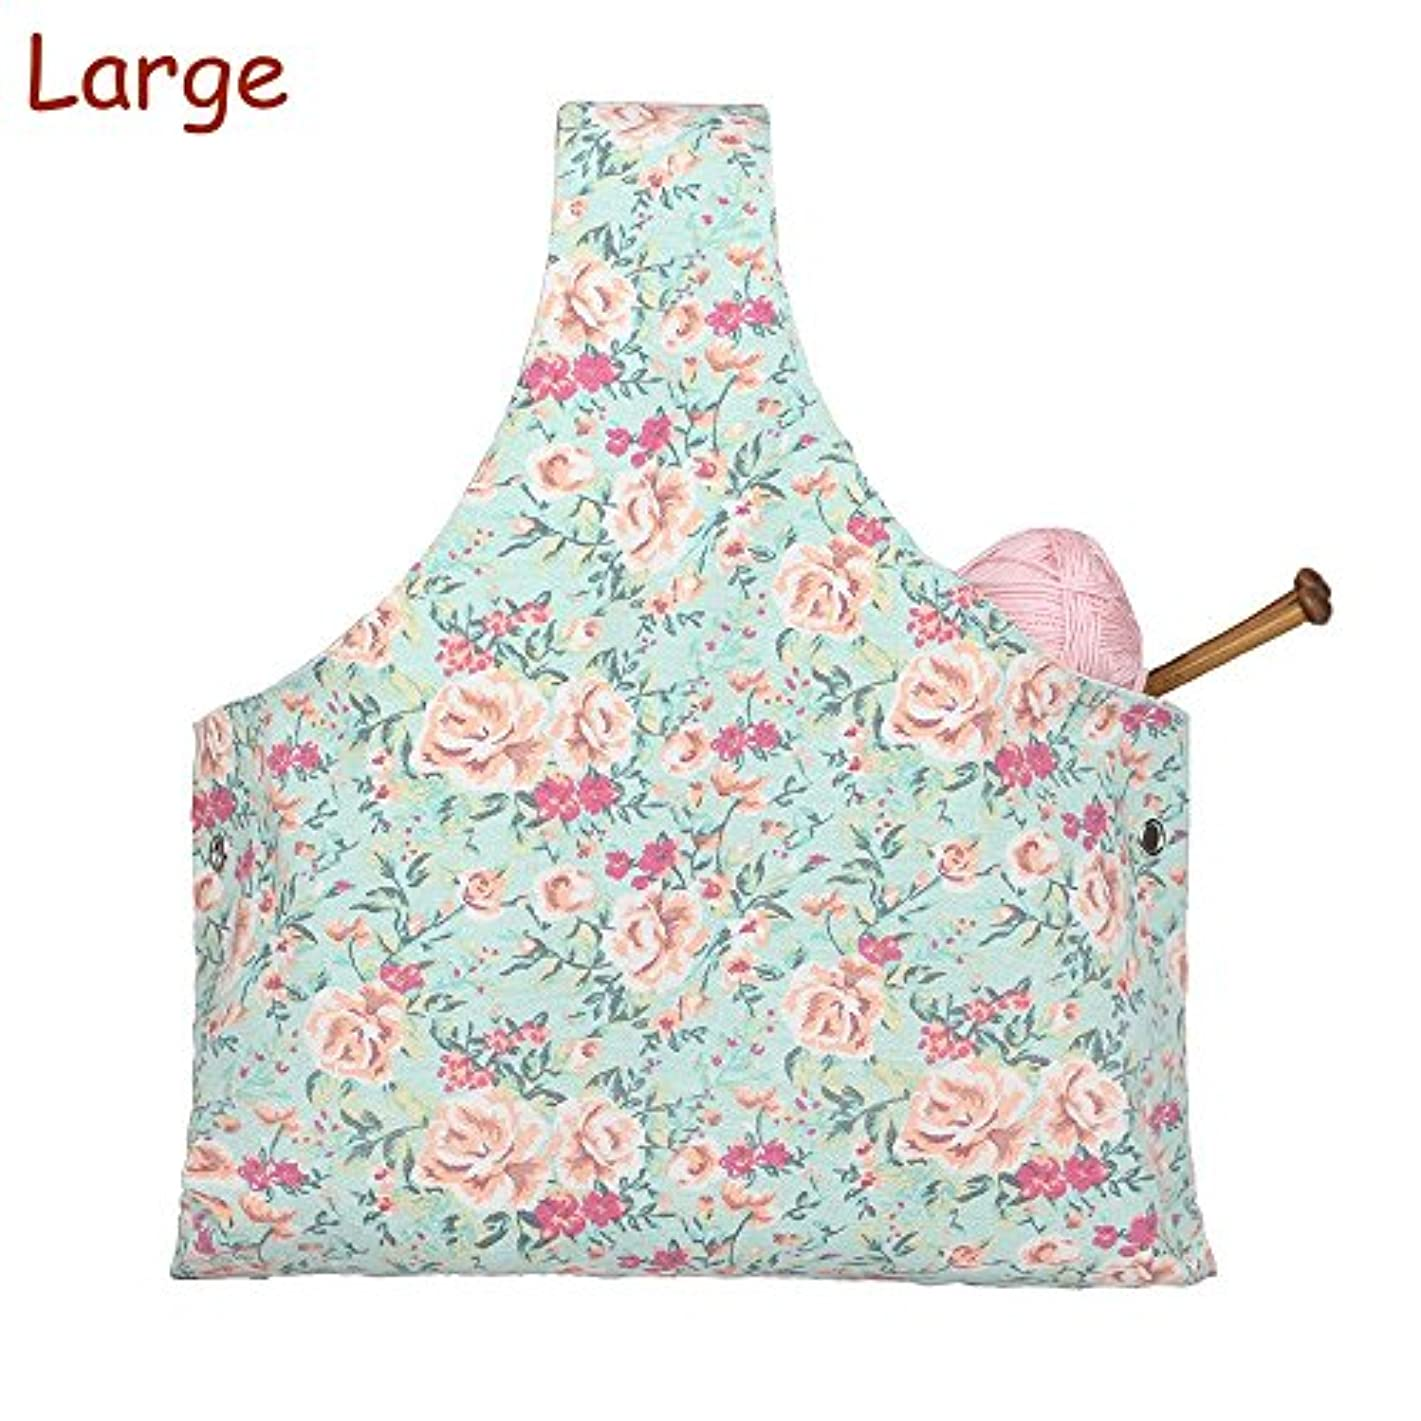 Knitting Tote Bag Yarn Storage Organizer for Large Projects, Sweet Floral (Large)